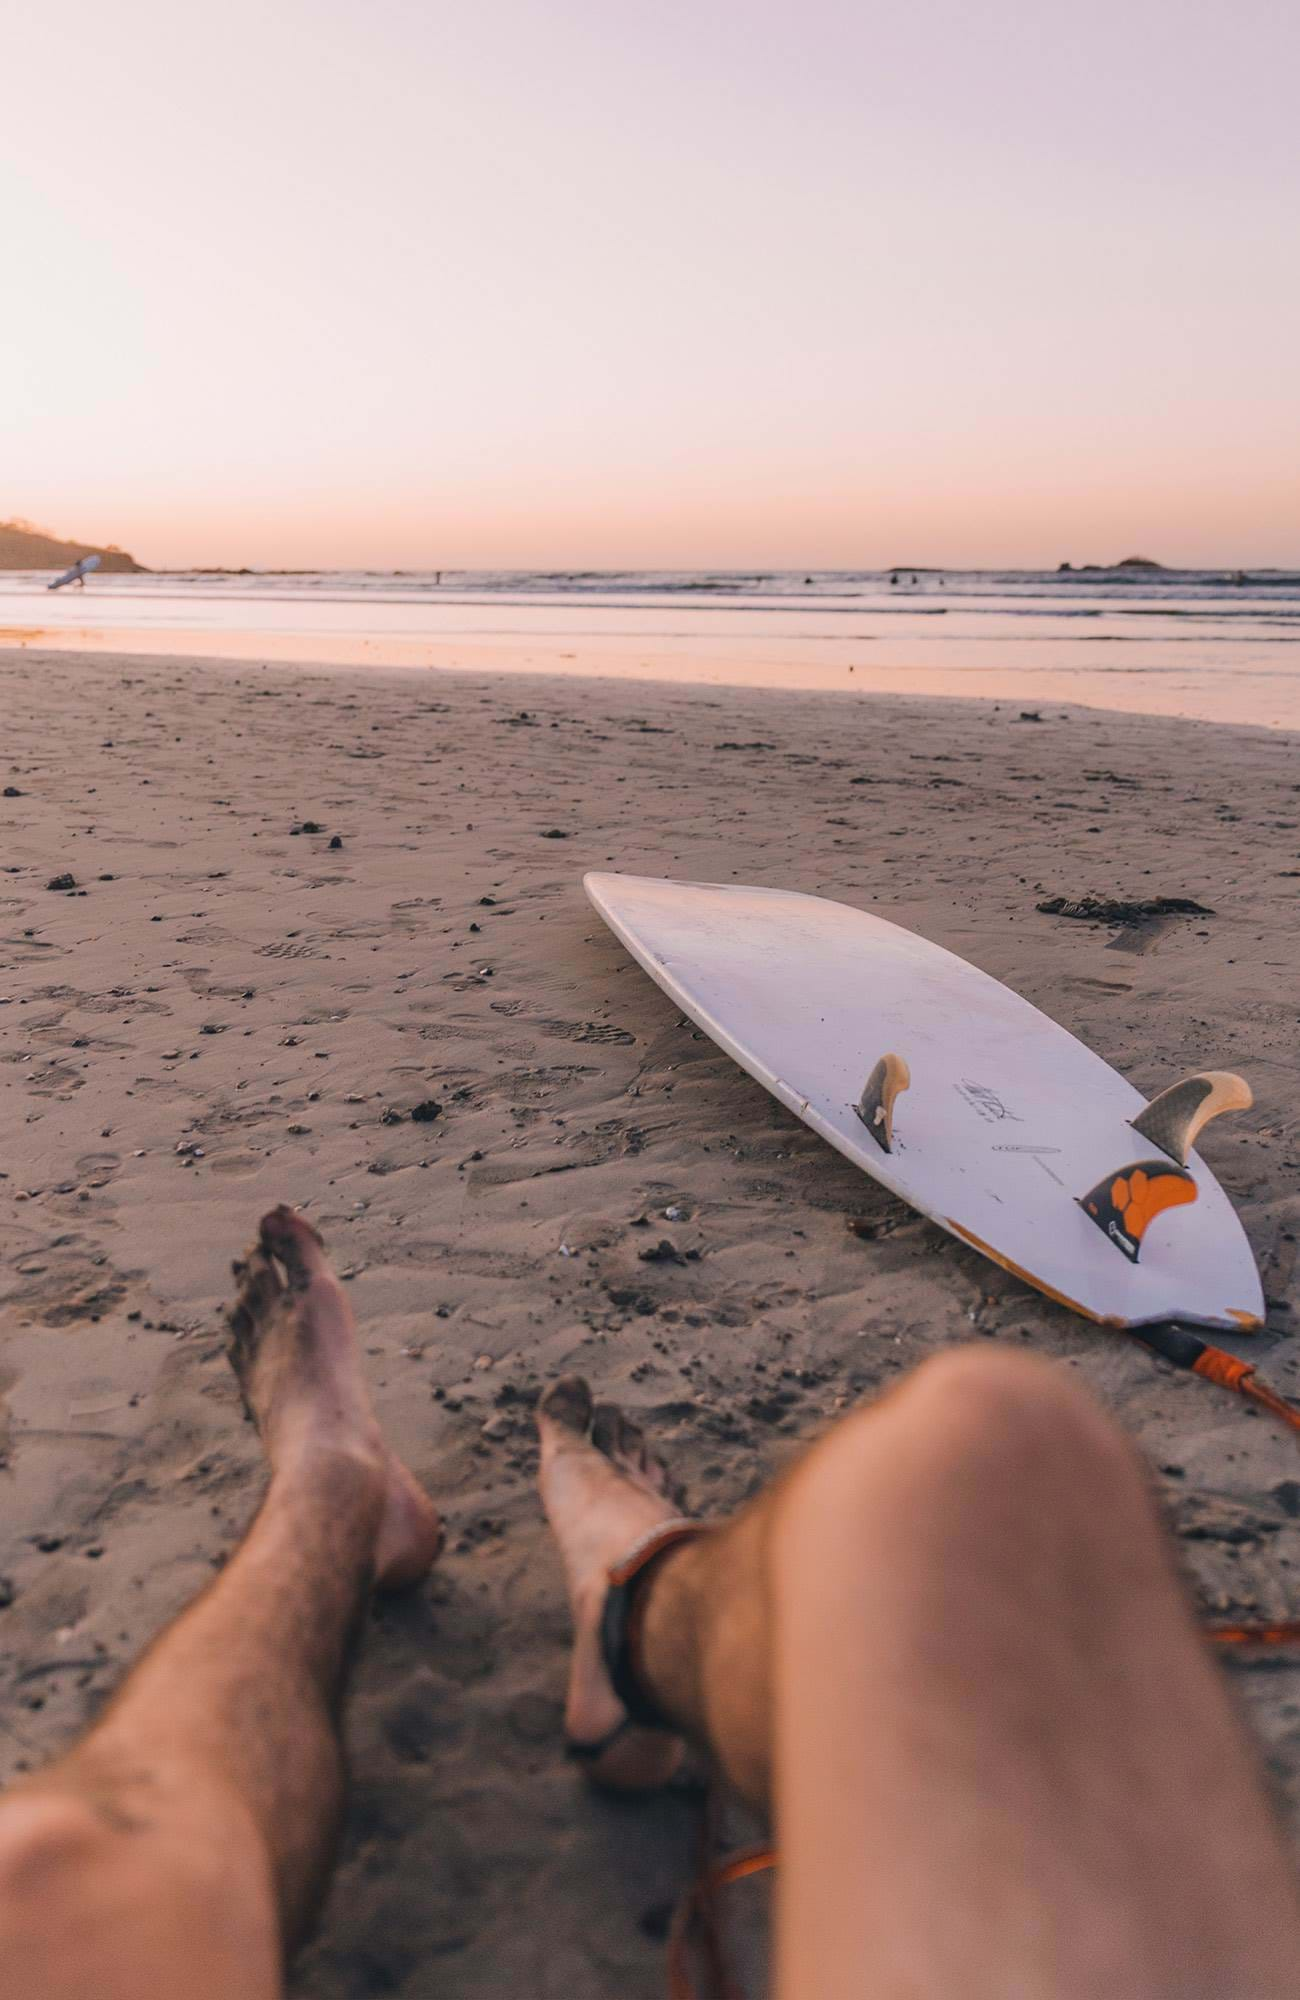 surfing-general-legs-surfboard-beach-sidebar